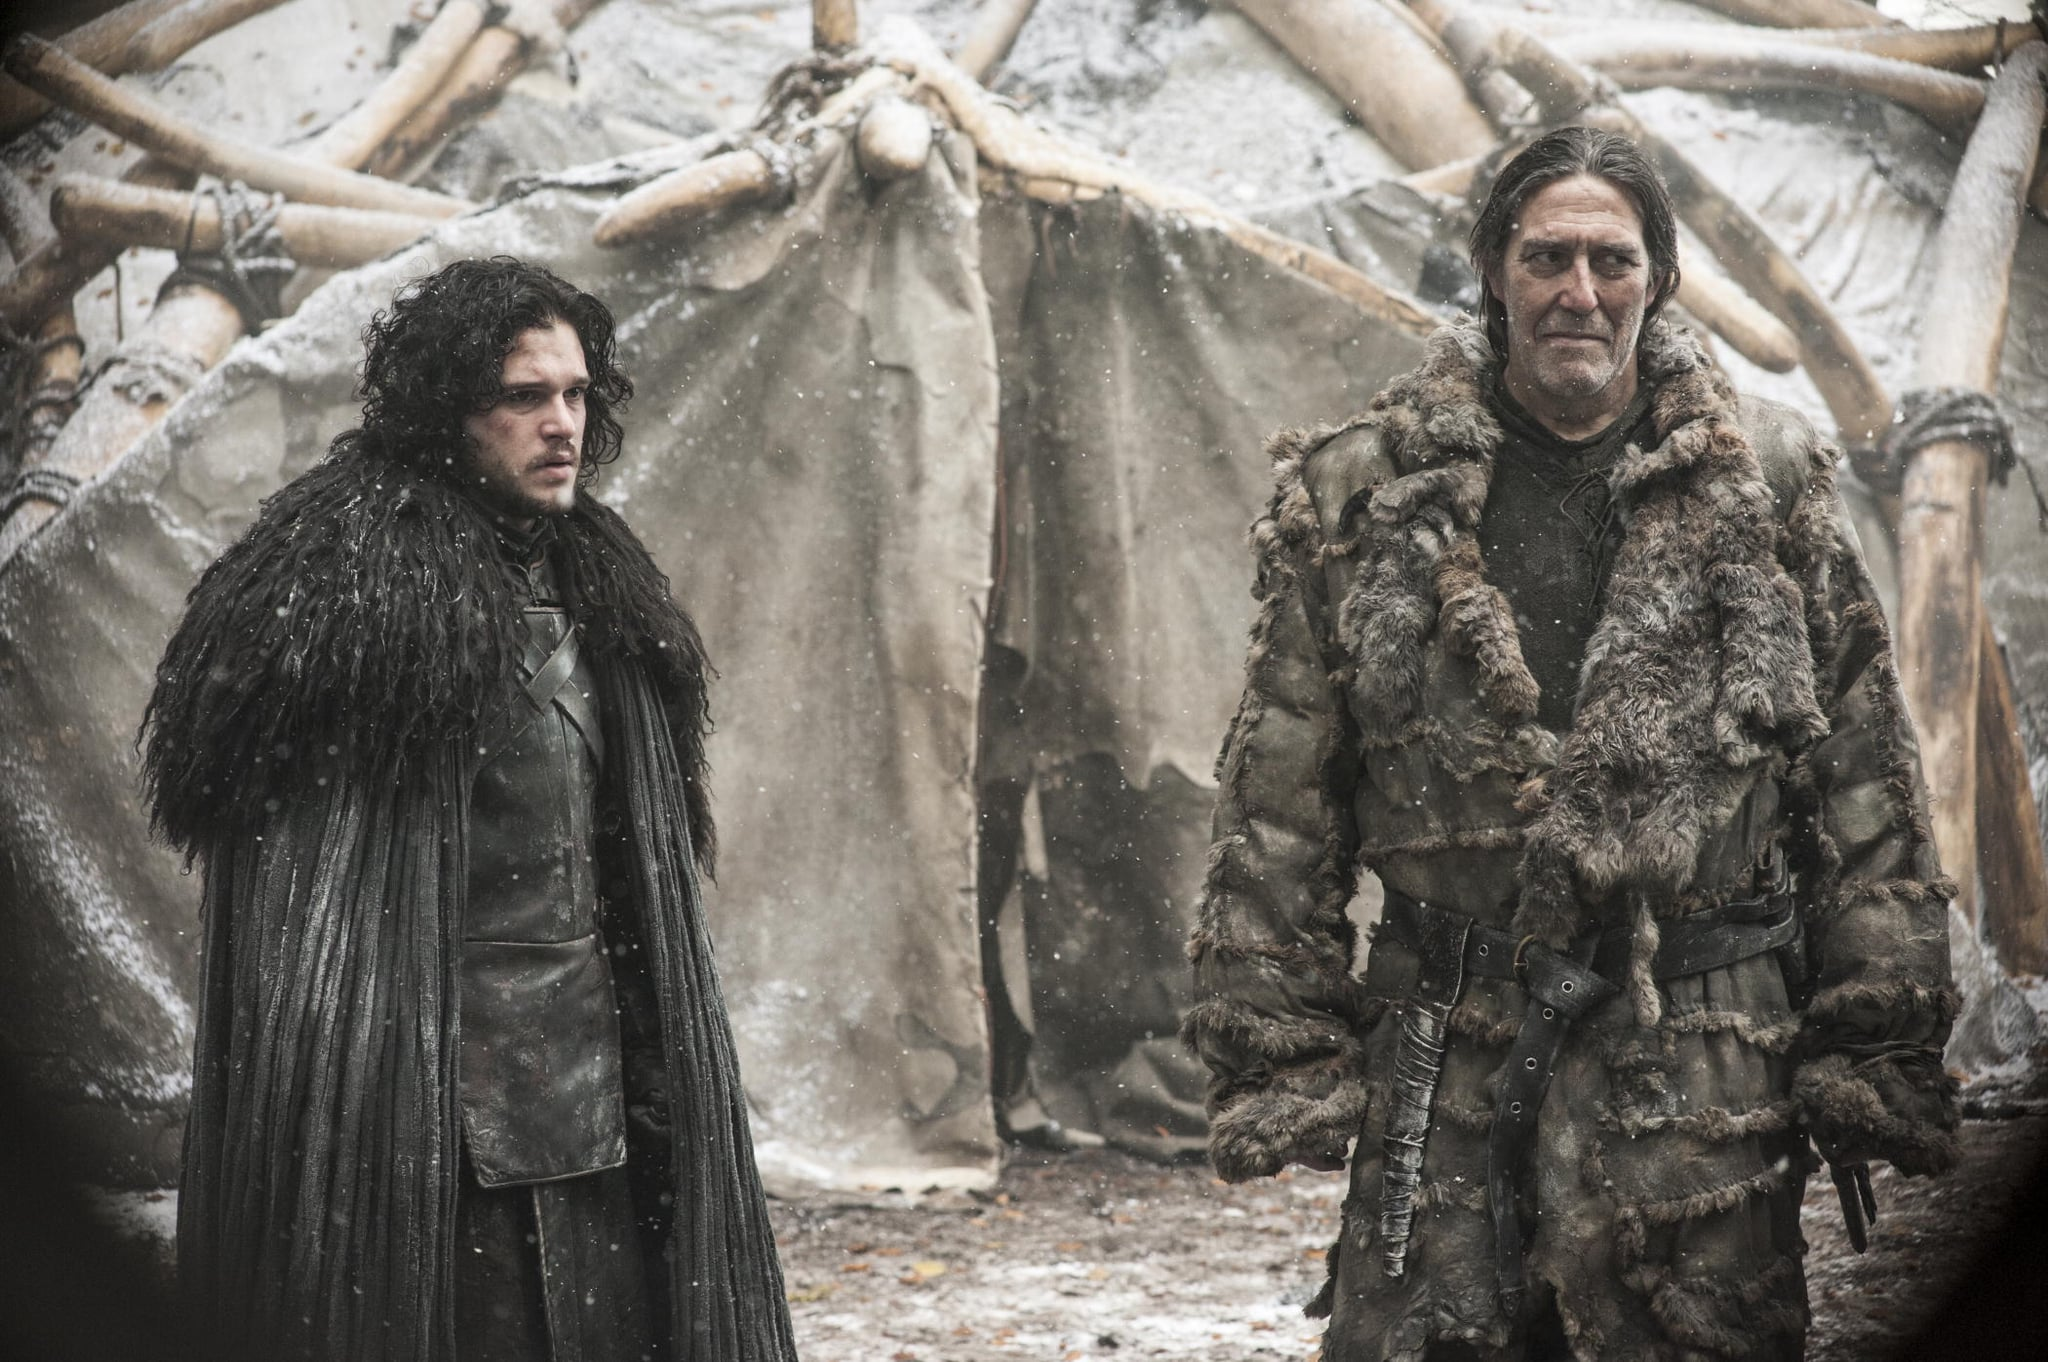 Game of thrones season 5 date in Perth